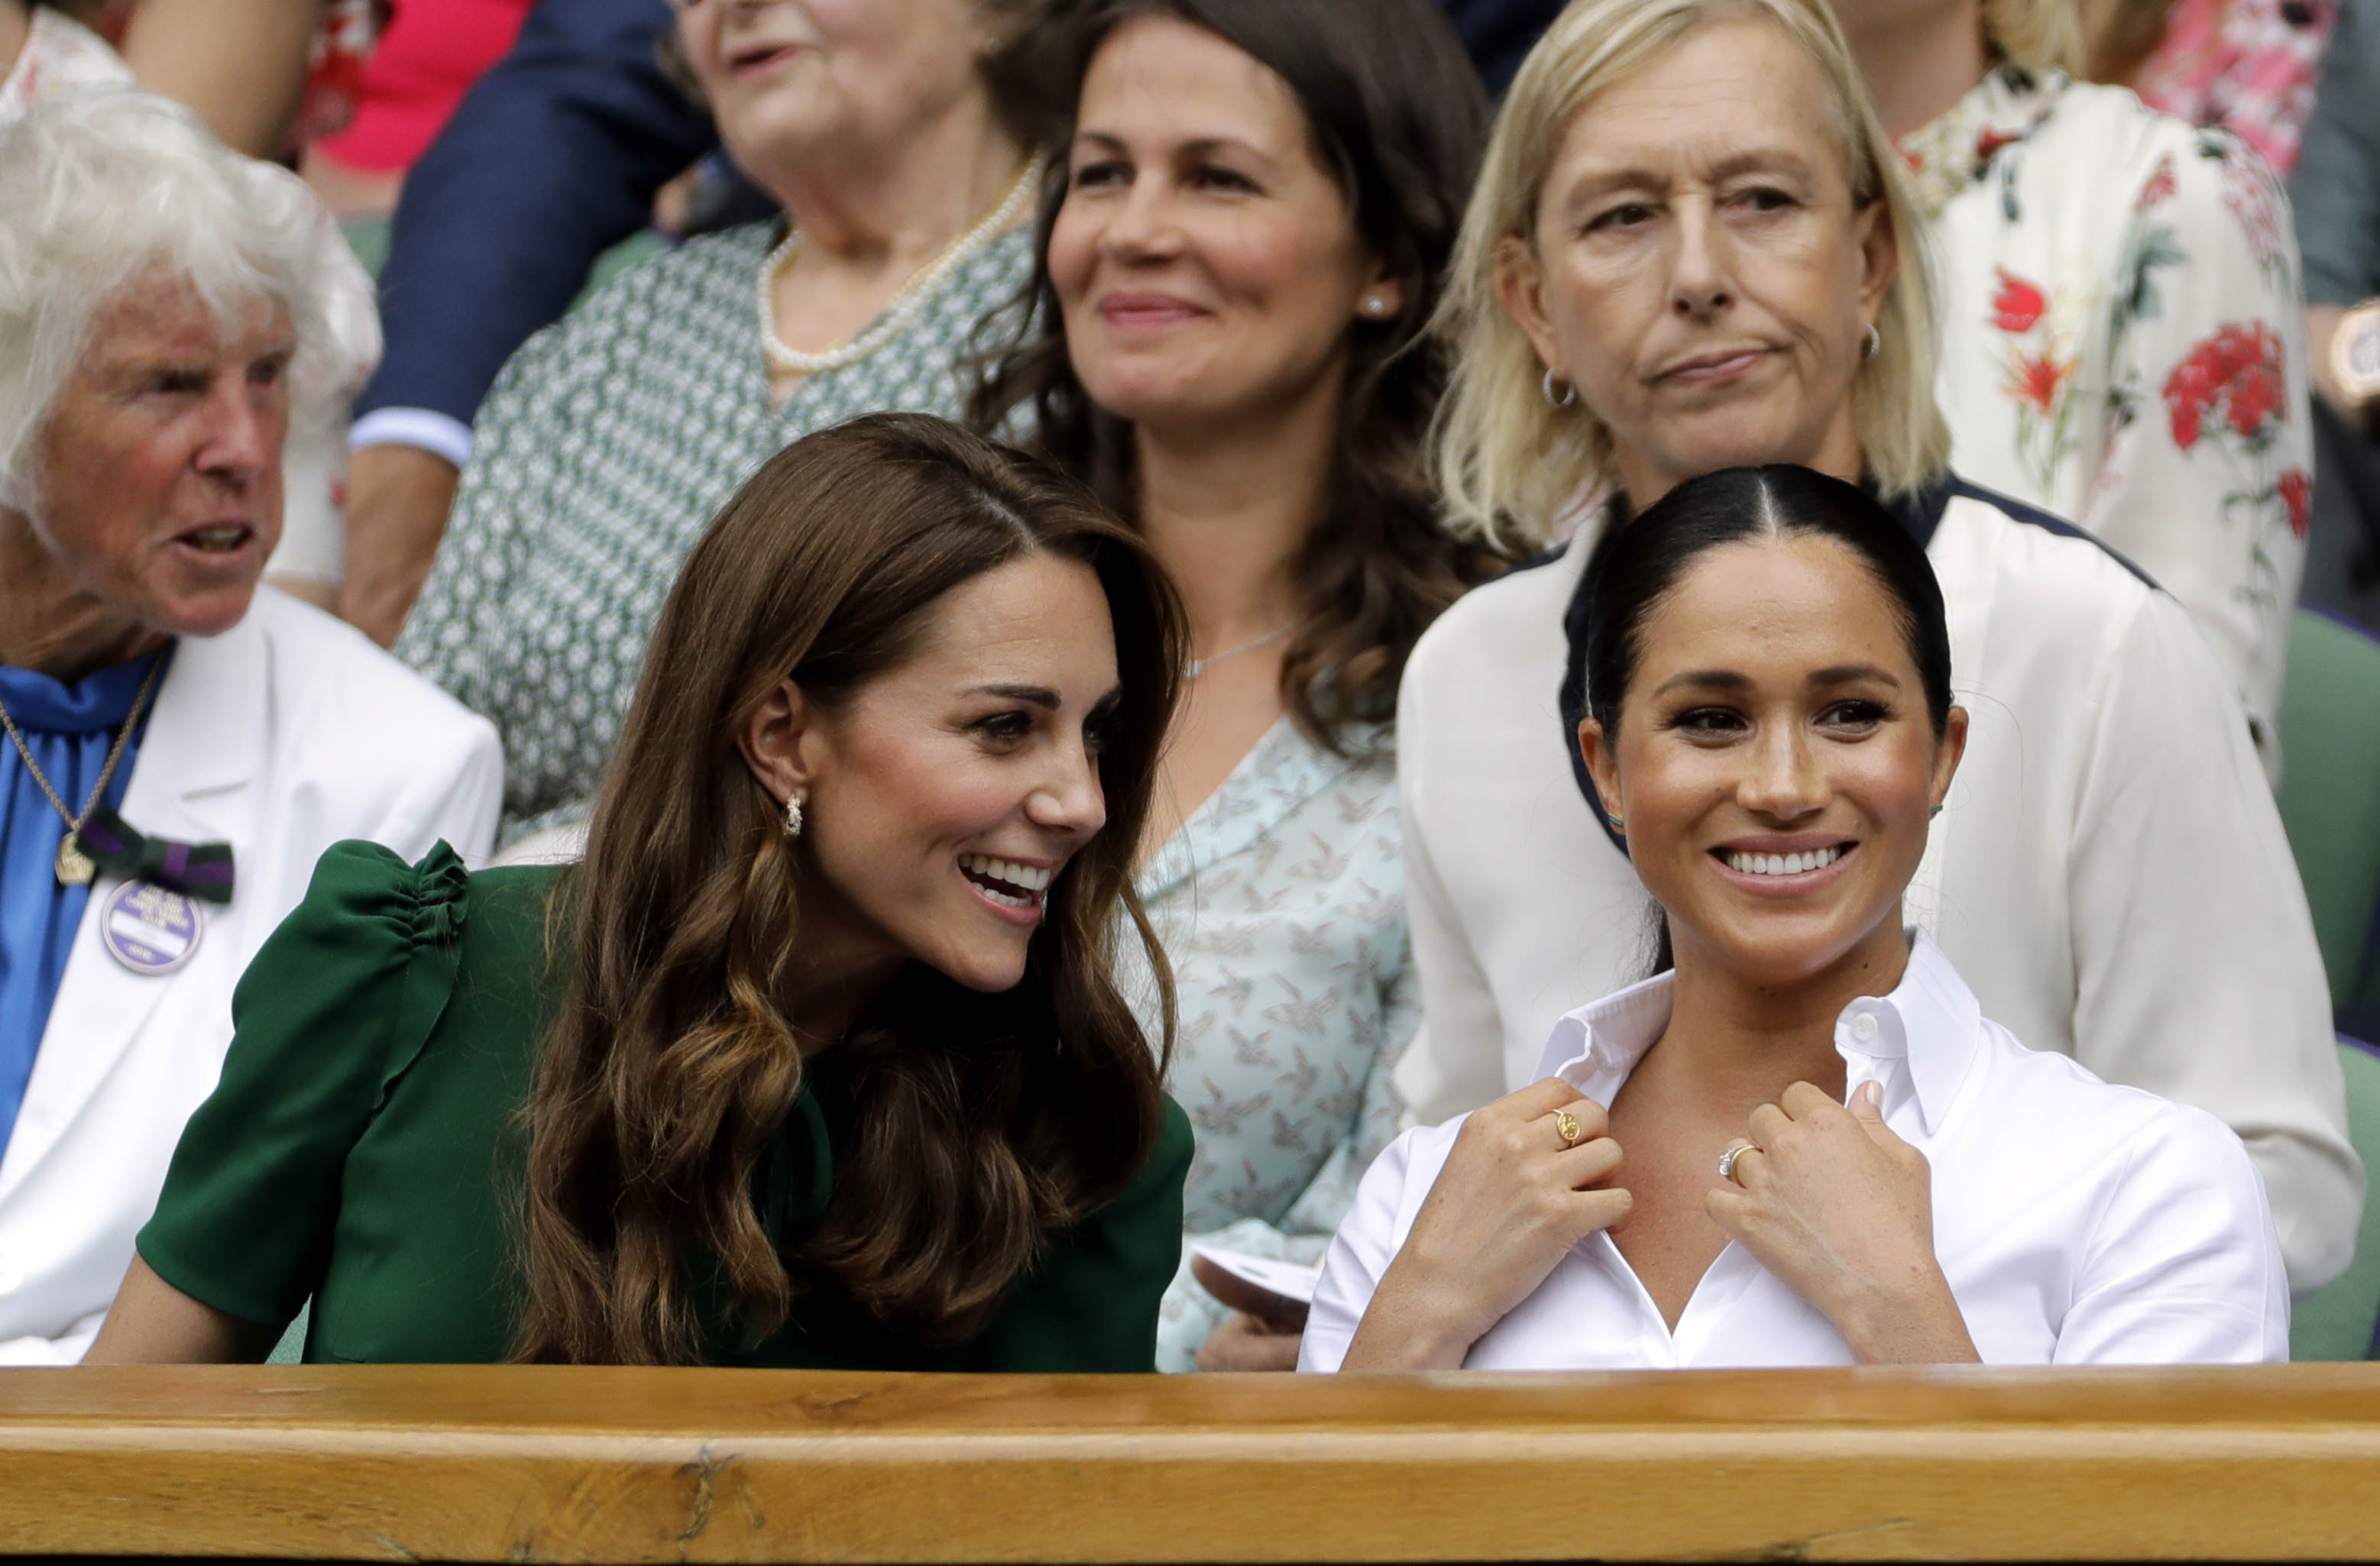 The sweet reason why Kate Middleton and Meghan Markle are